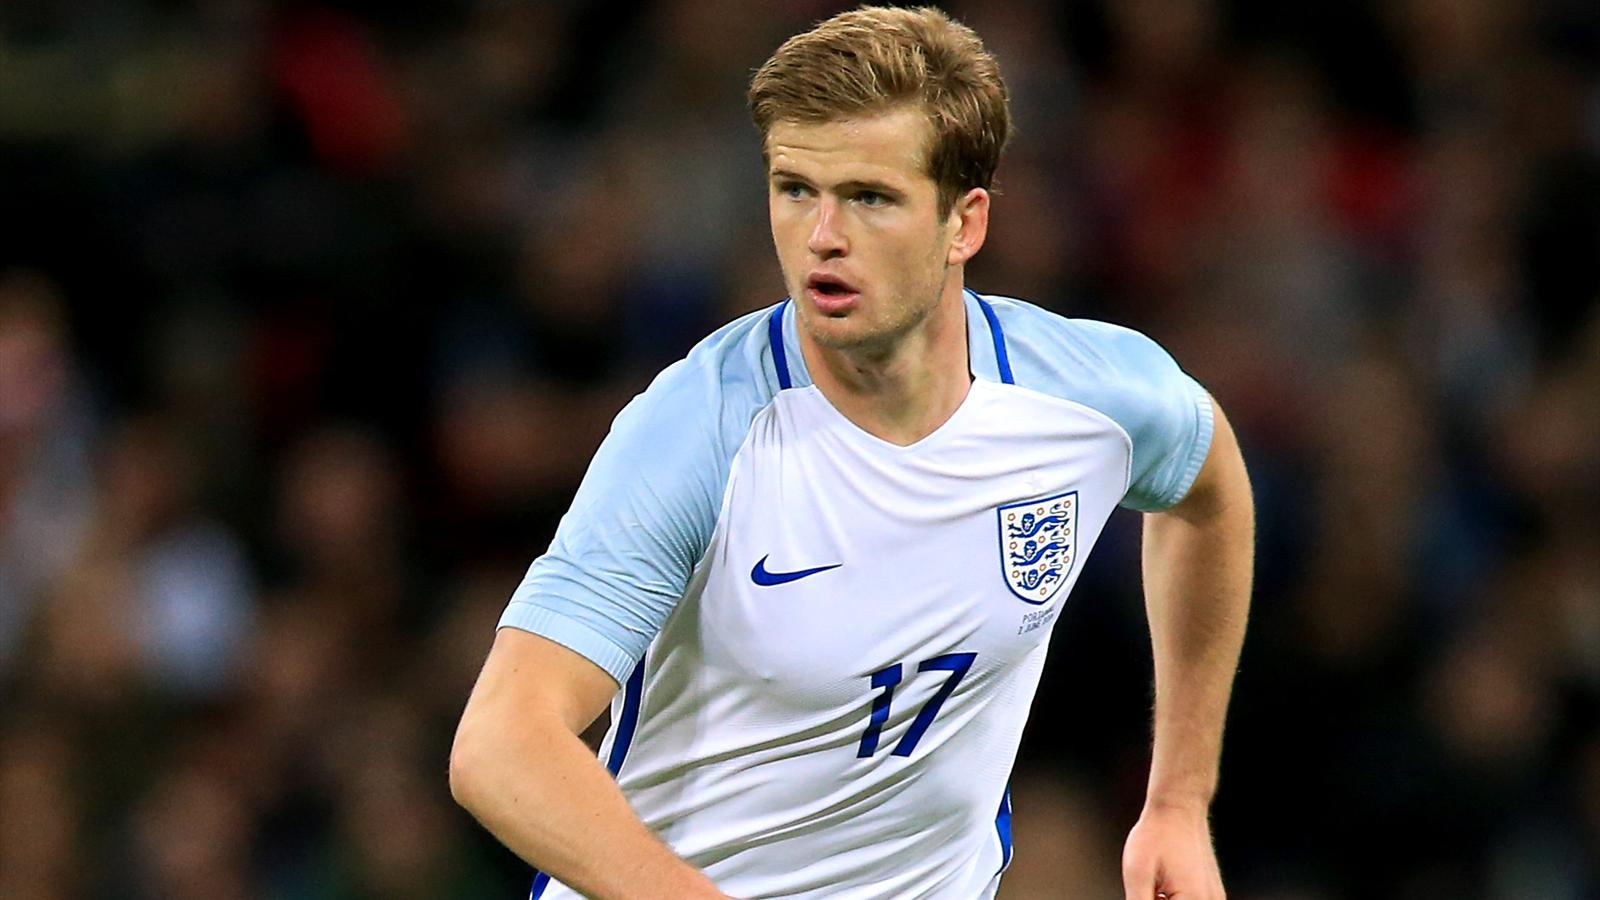 Eric Dier would relish England meeting with adopted home Portugal - Euro 2016 - Football - Eurosport